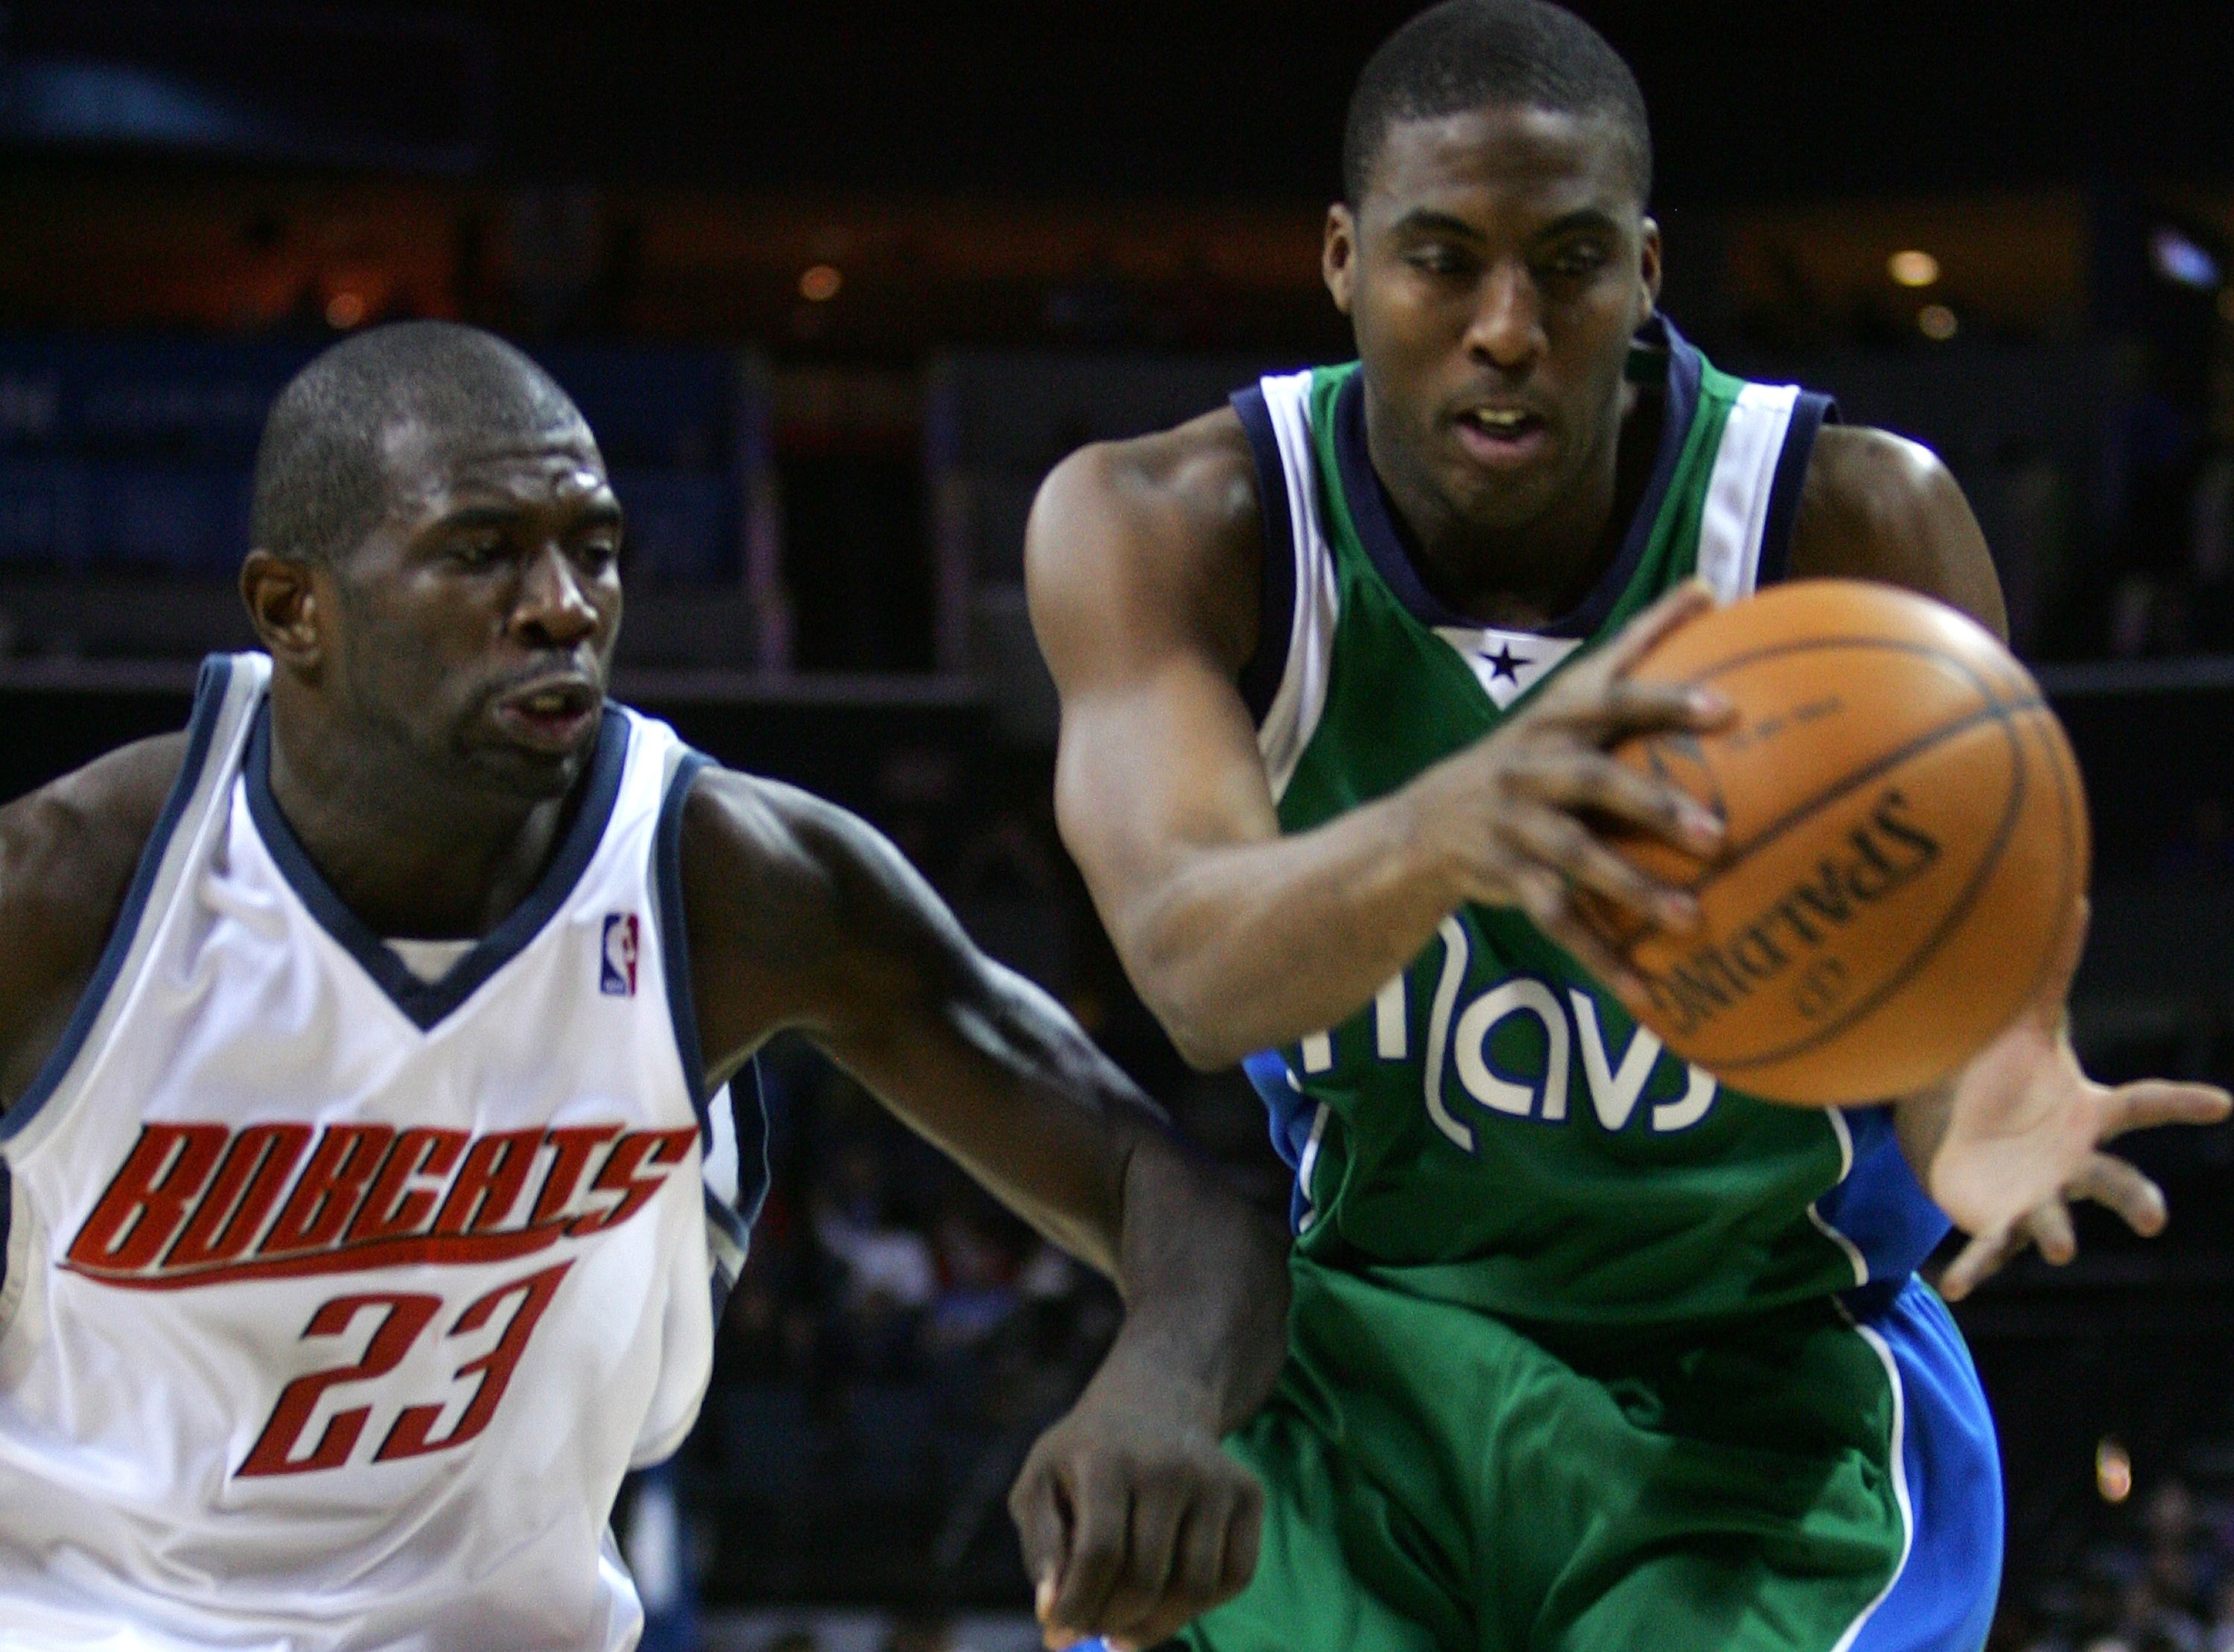 CHARLOTTE, NC - JANUARY 23:  Eddie Jones #6 of the Dallas Mavericks battles for the ball with Jason Richardson #23 of Charlotte Bobcats during their game at Bobcats Arena on January 23, 2008 in Charlotte, North Carolina.  (Photo by Streeter Lecka/Getty Im